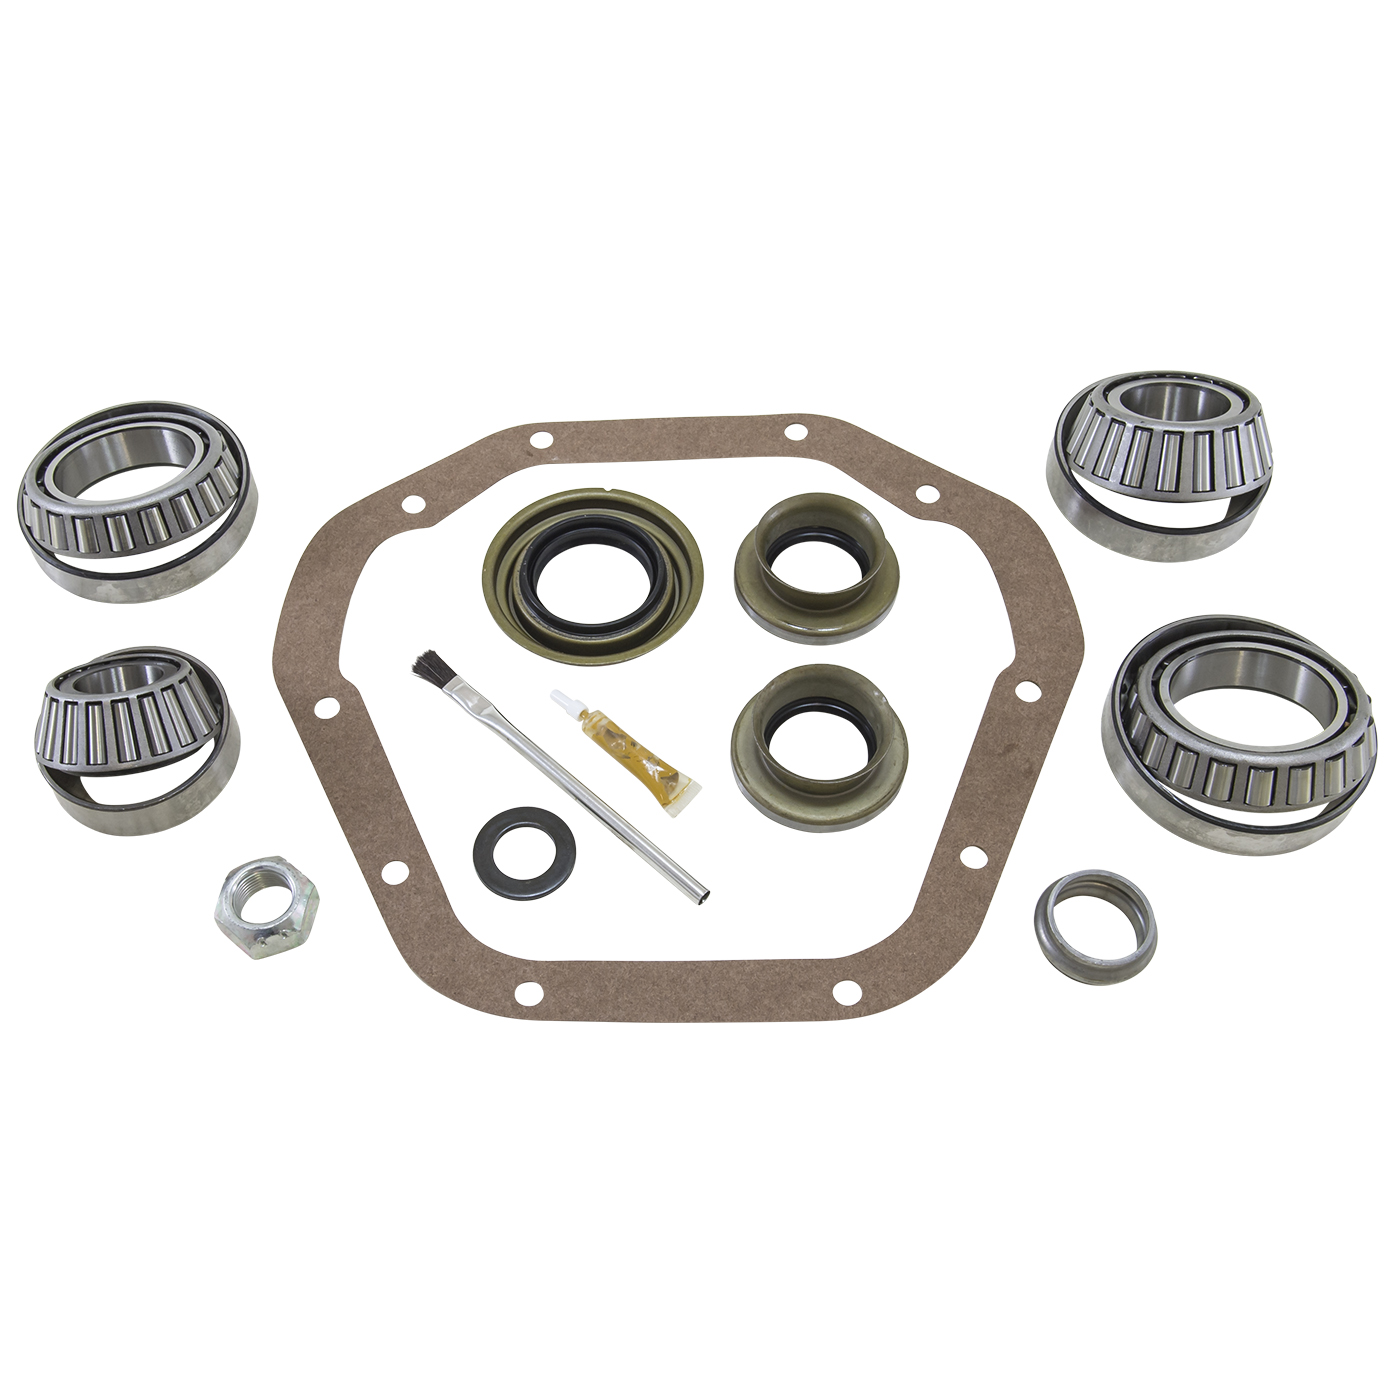 ZBKD60-F - USA Standard Bearing kit for Dana 60 front